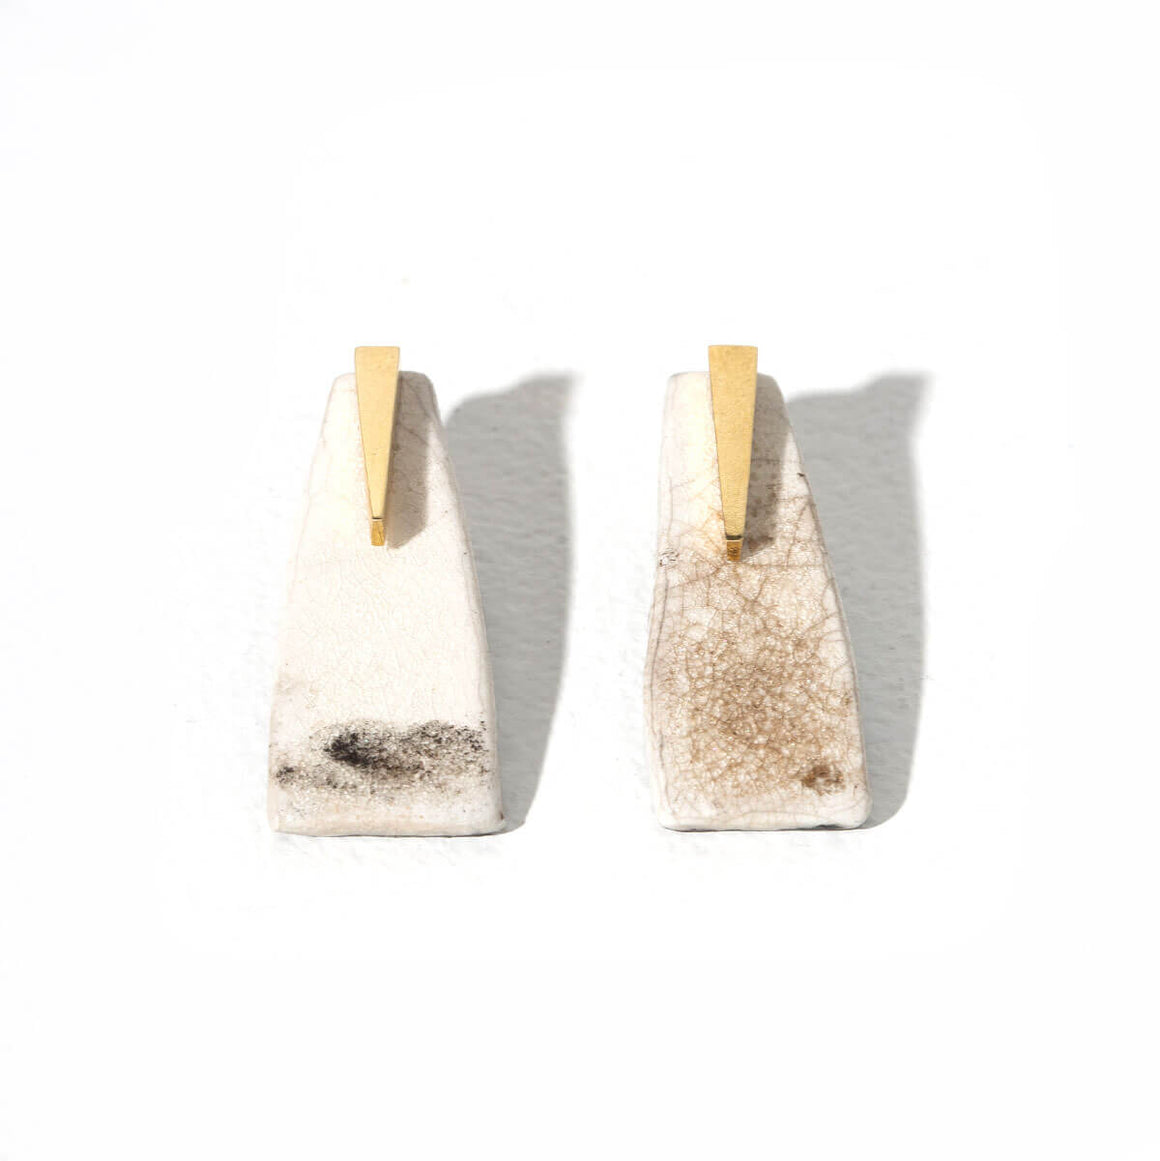 MULXIPLY Pillar 2-in-1 Earrings - Raku + Brass